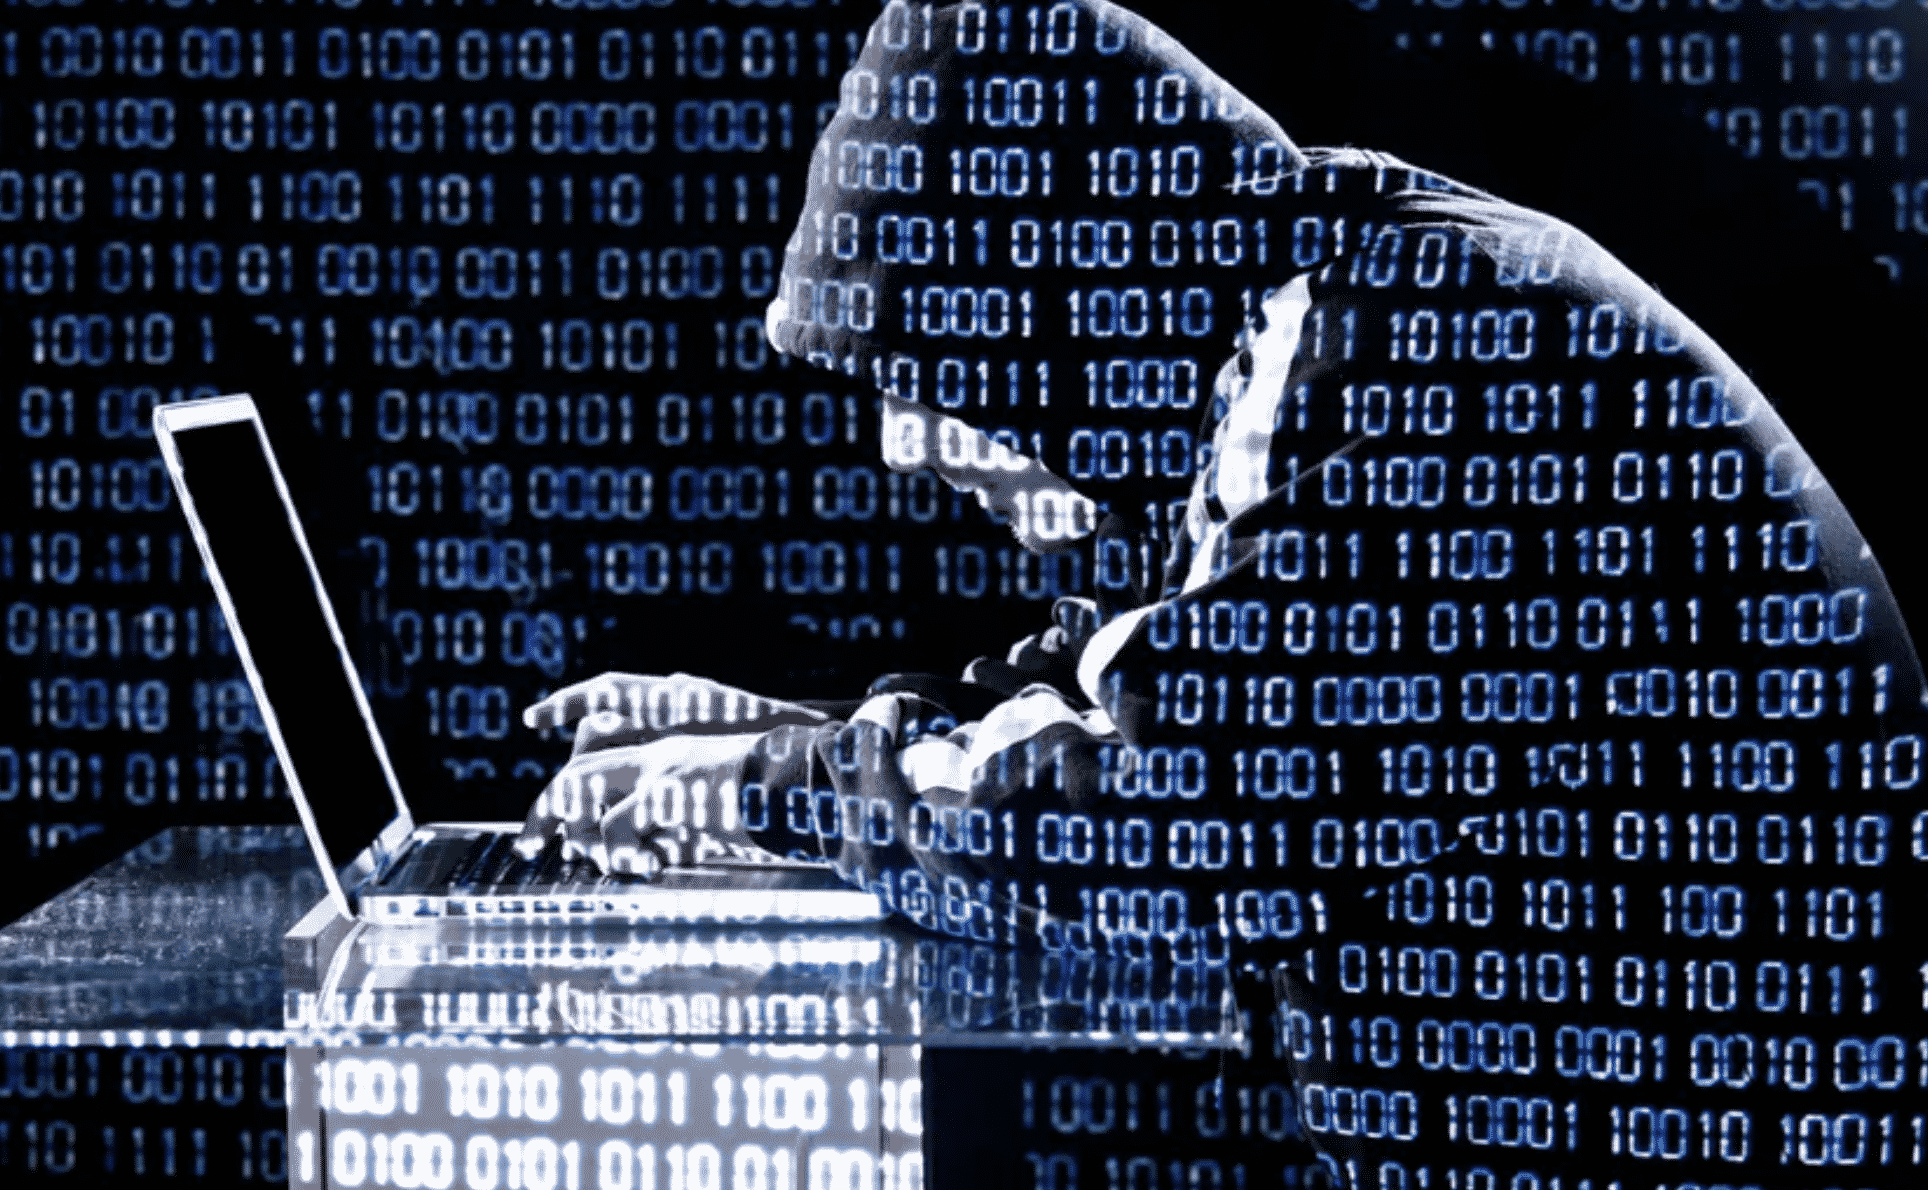 Sensitive Data Exposure: What Do Hackers Want the Most?